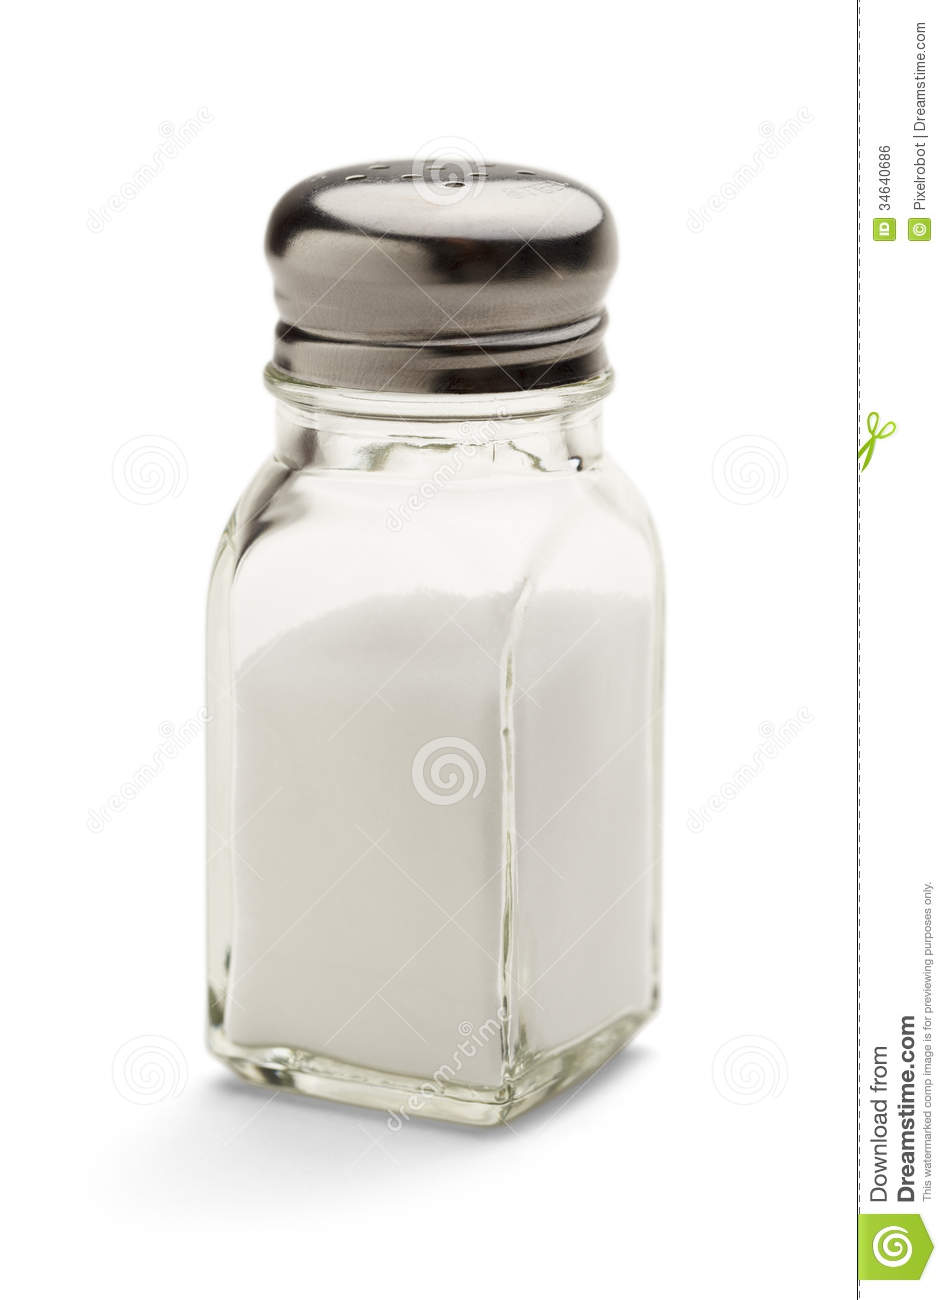 Glass Salt Shaker stock photo Image of salty image